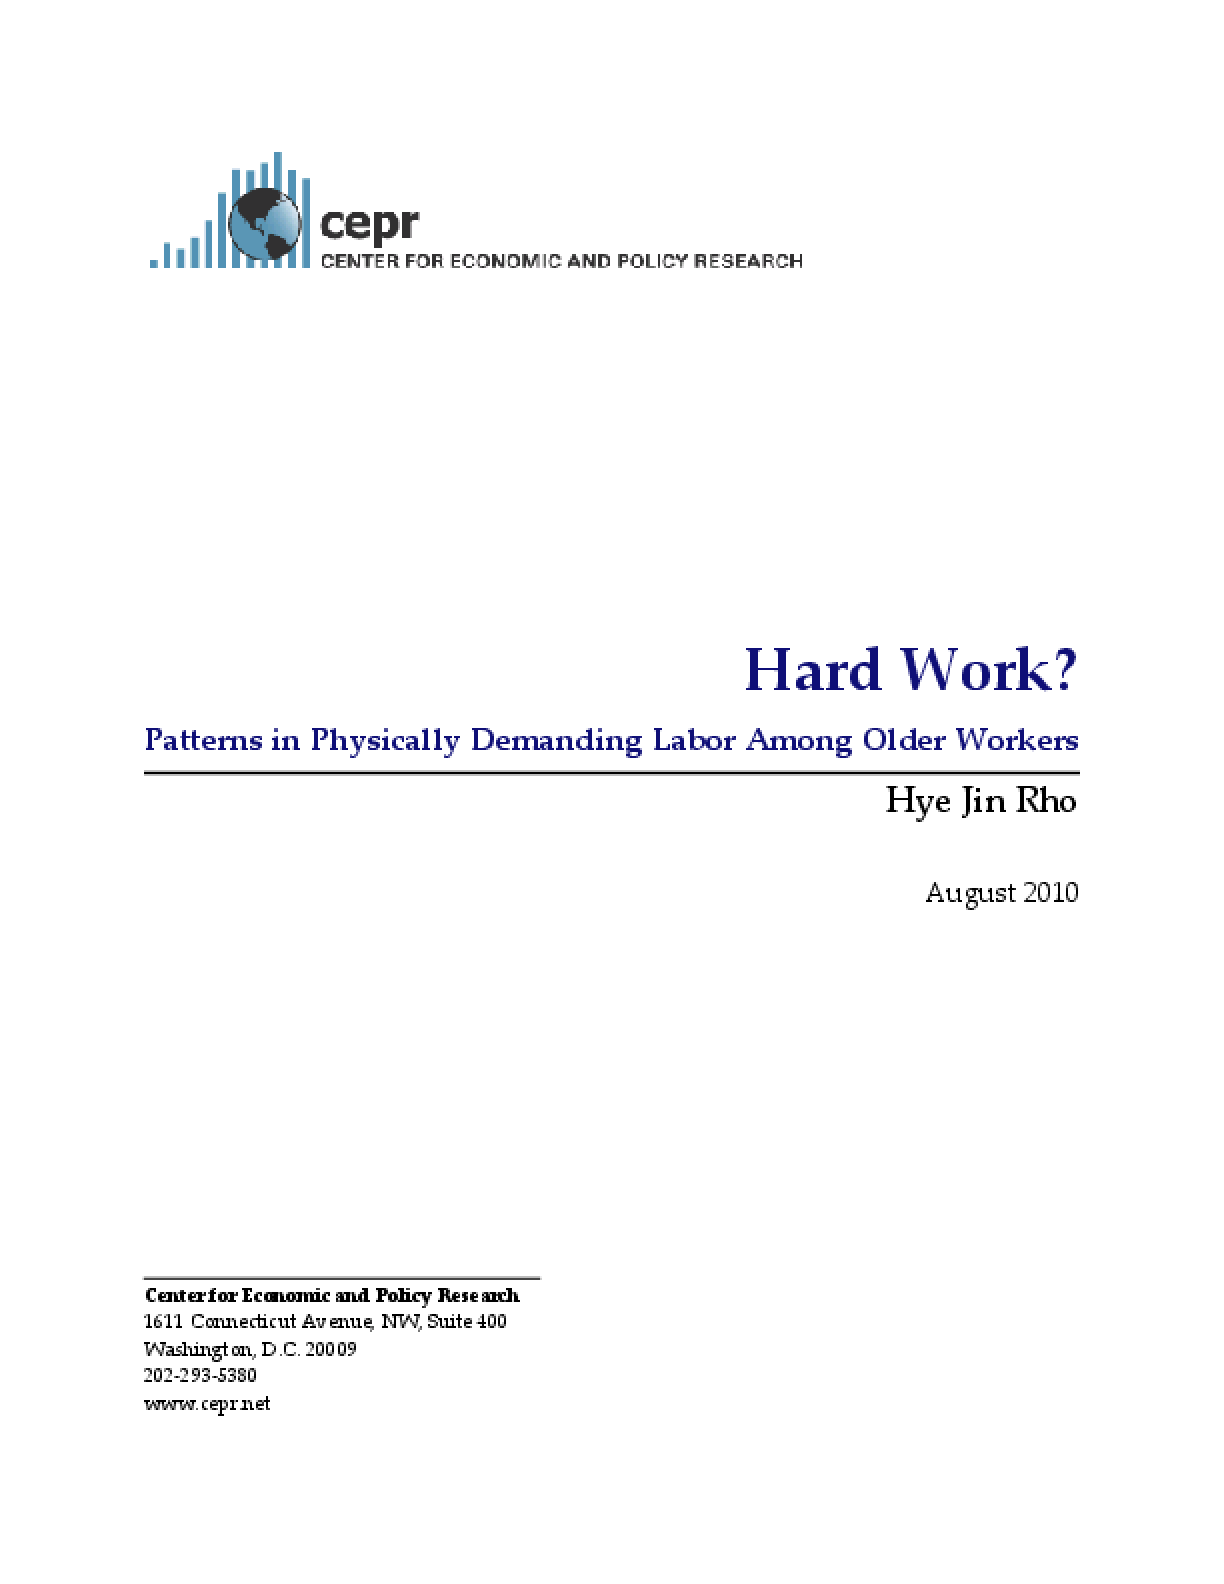 Hard Work? Patterns in Physically Demanding Labor Among Older Workers